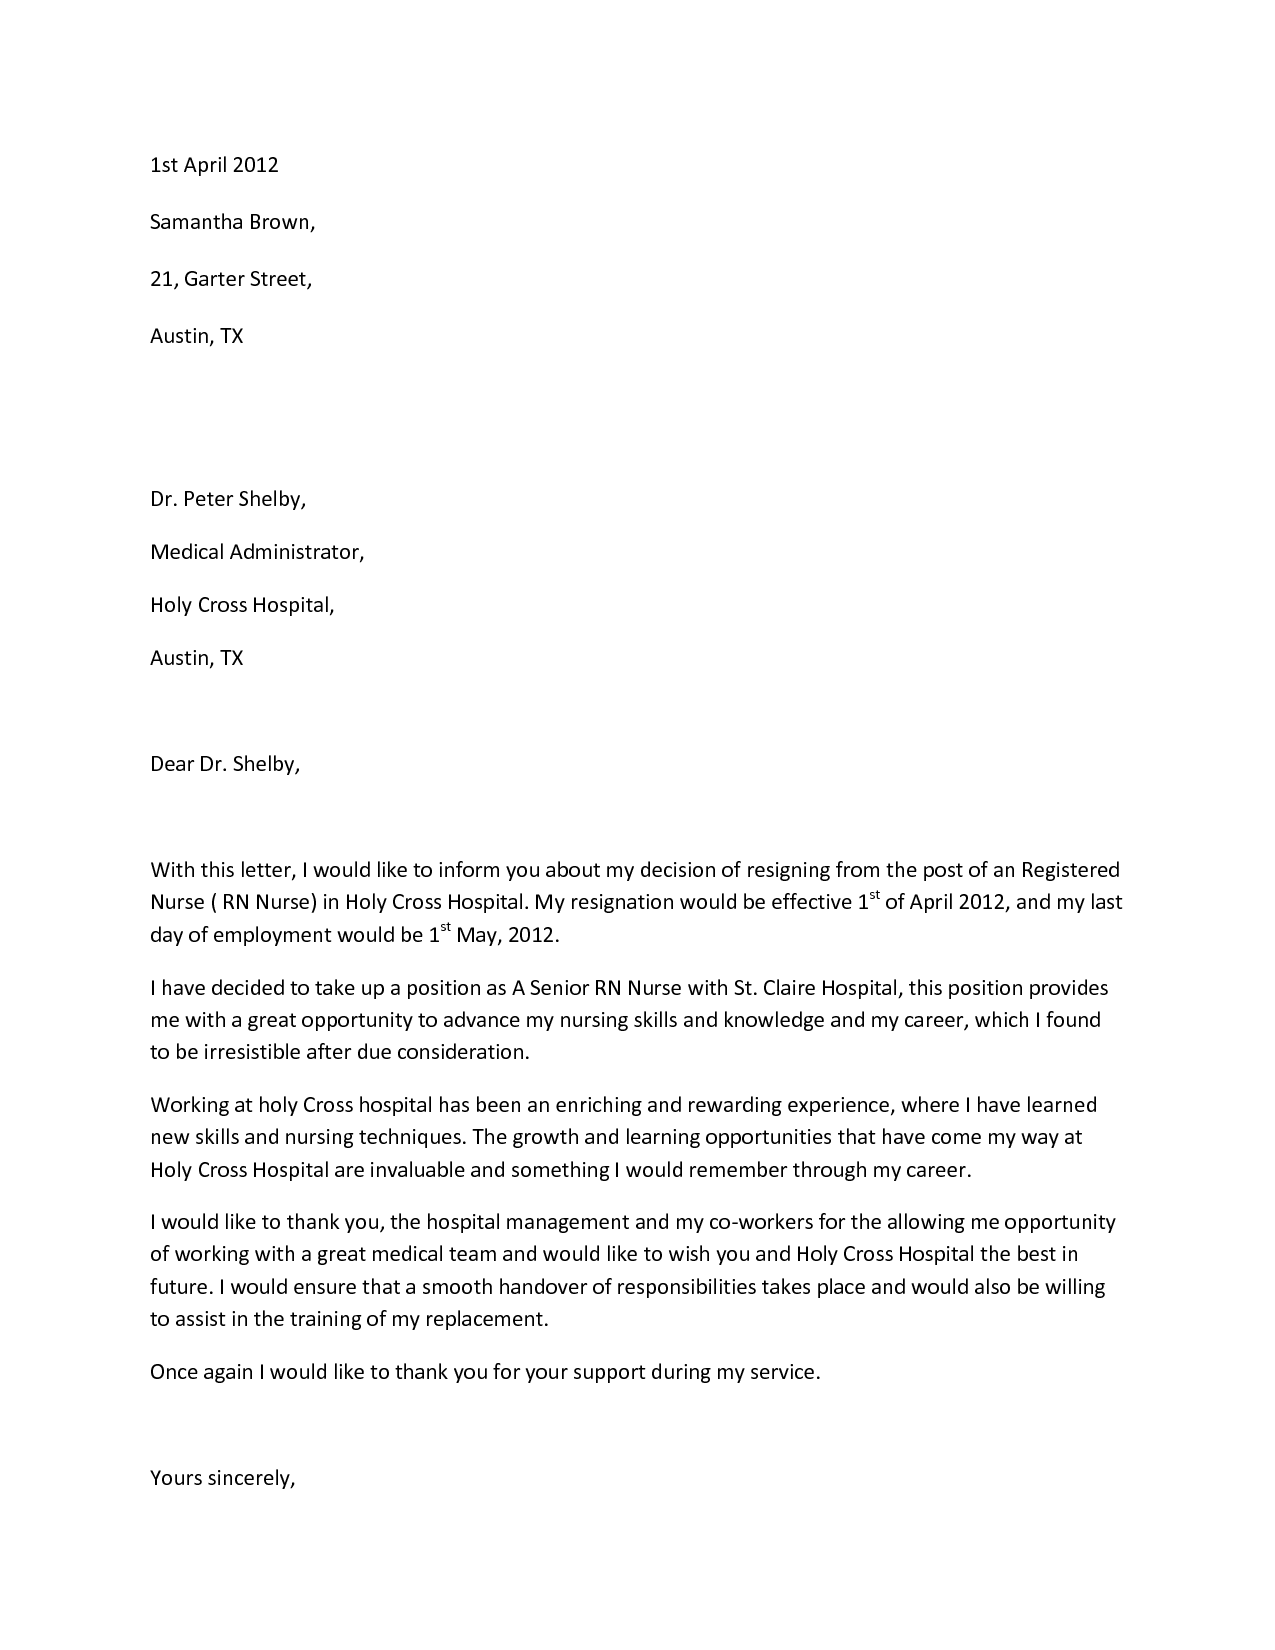 Sample Resignation LetterWriting A Letter Of Resignation Email Letter Sample